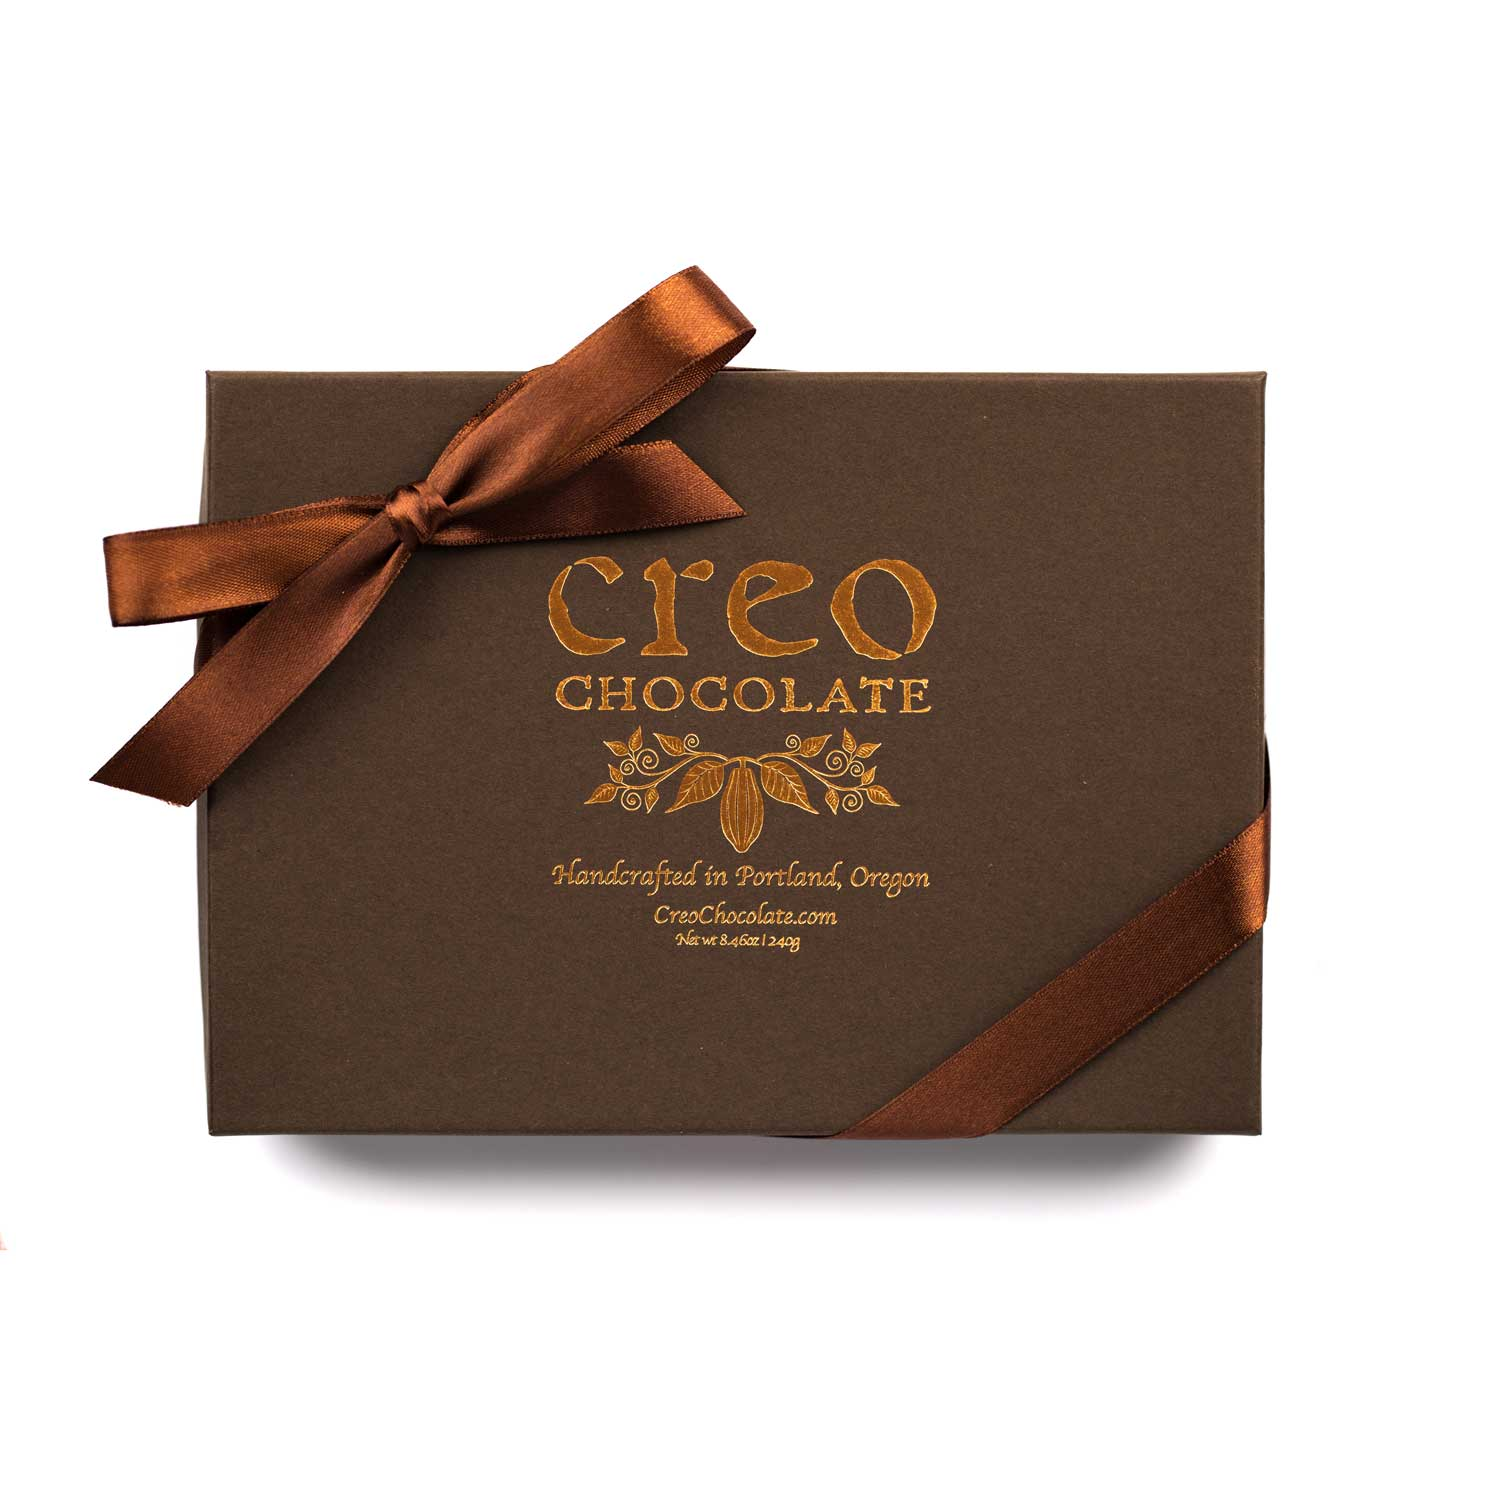 Turtle (Pecan and Caramel) 24-pack - Creo Chocolate